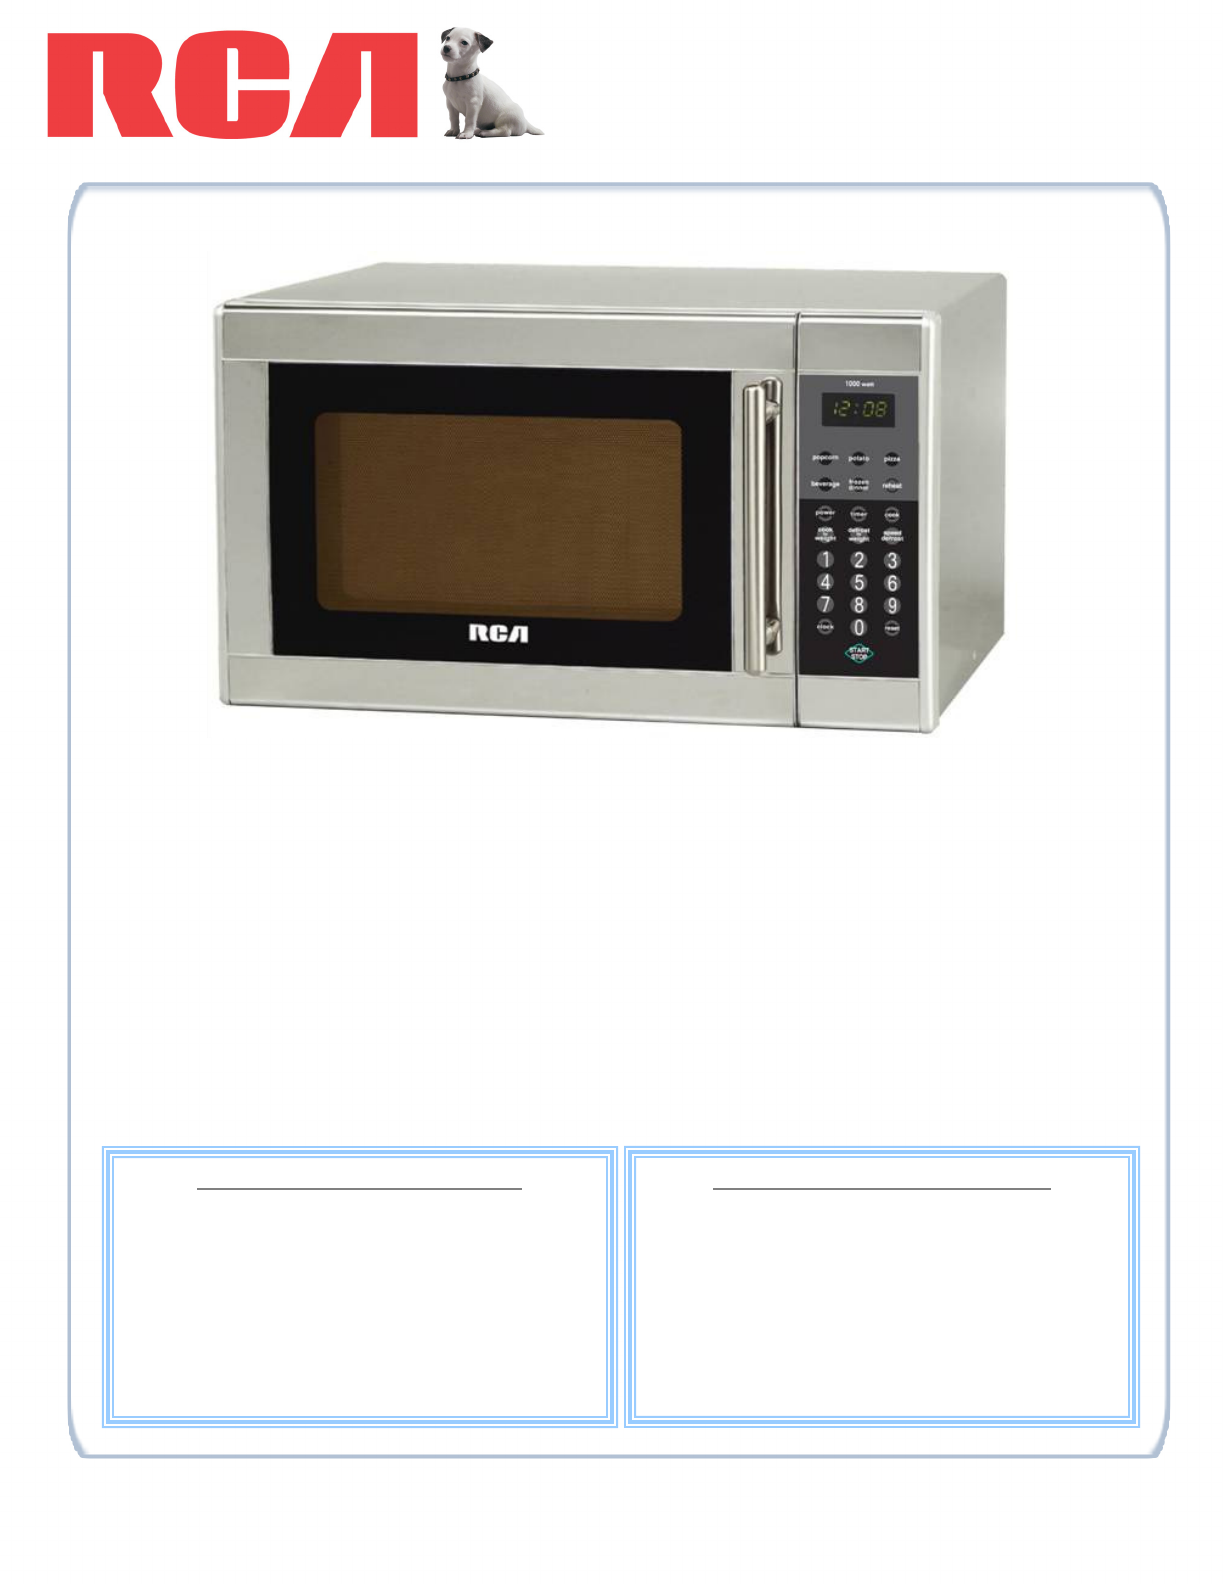 rca microwave oven rmw1168 user guide. Black Bedroom Furniture Sets. Home Design Ideas